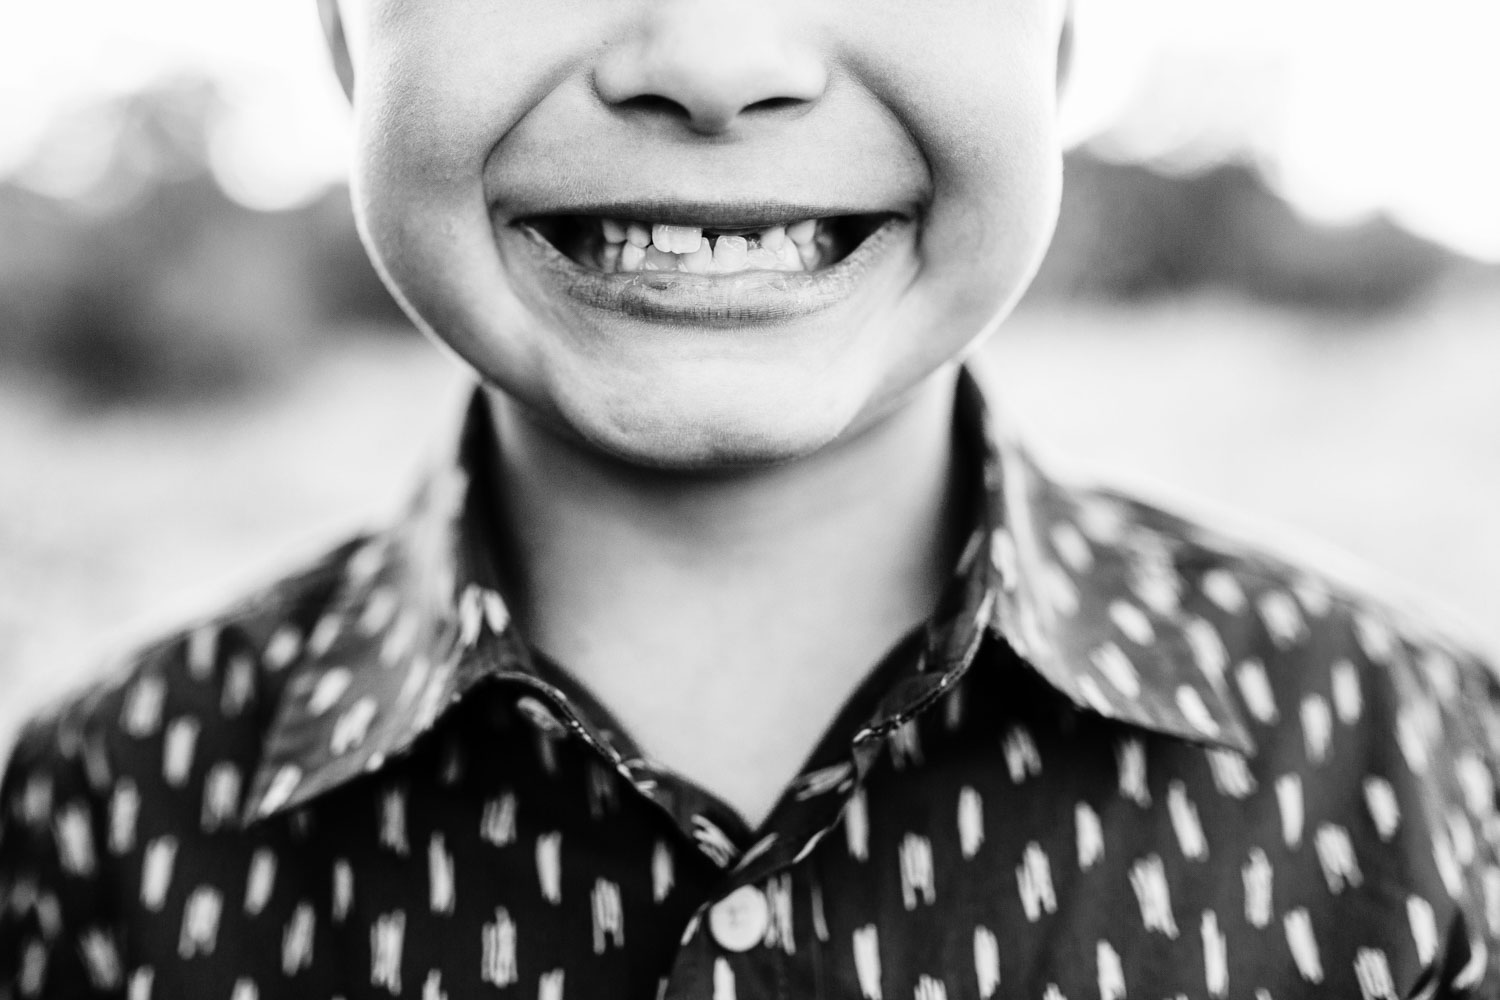 A boy shows off his toothless grin for family pictures with Amy Wright Photography in Roseville, California.